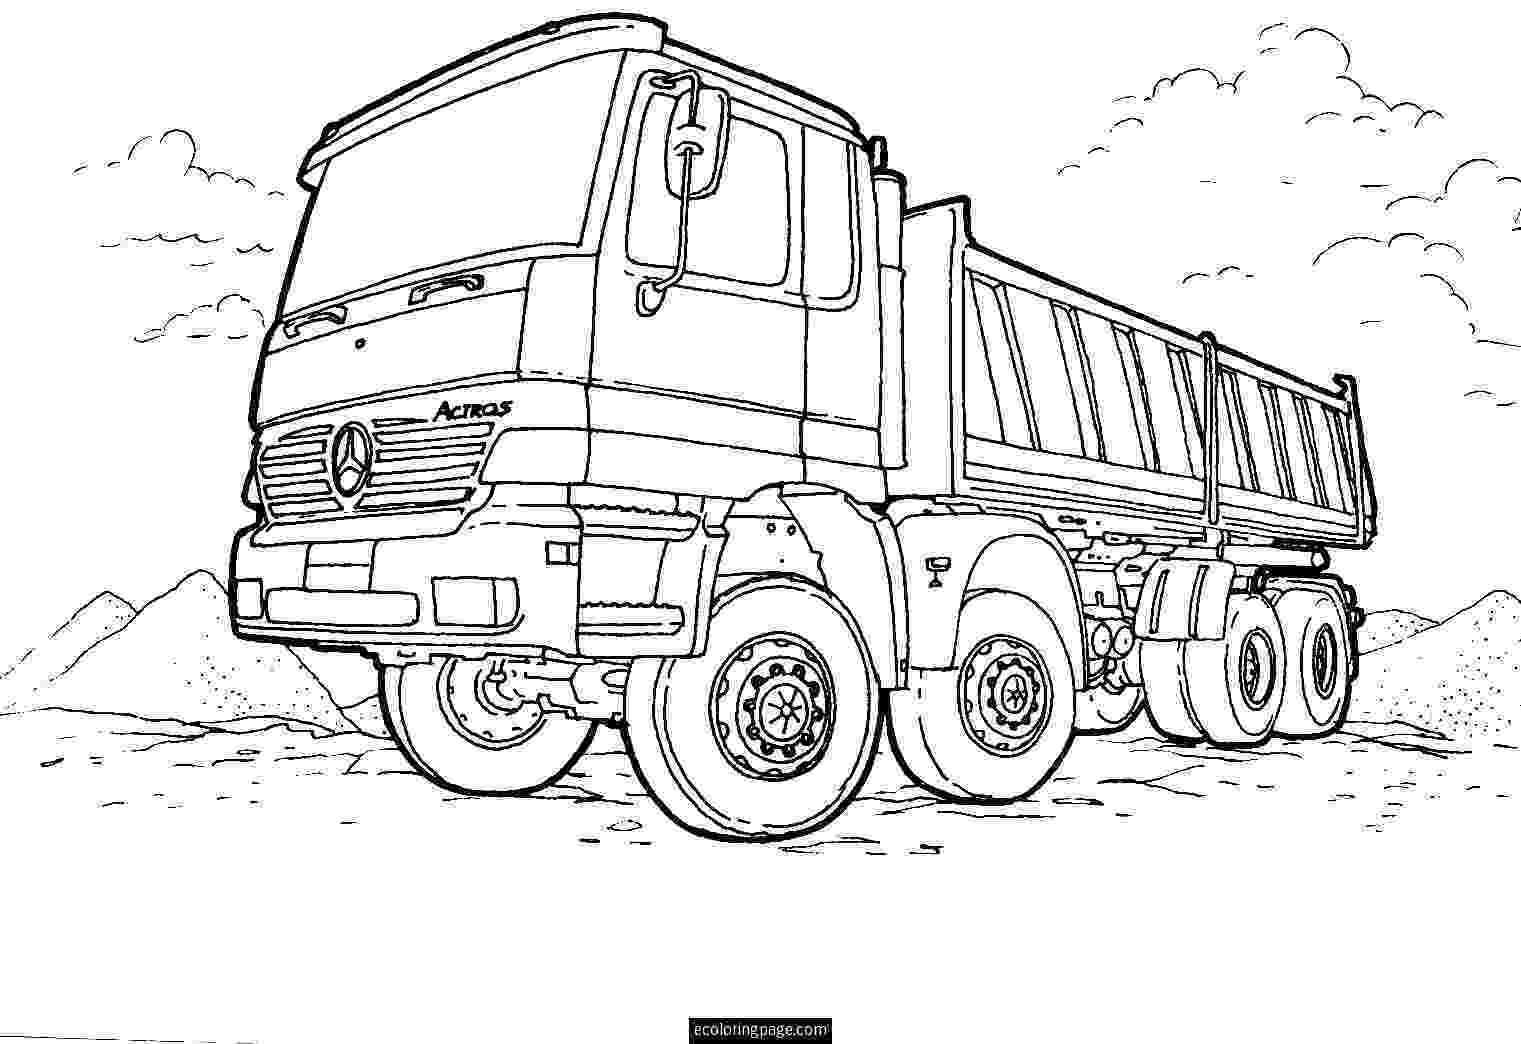 coloring pages of semi trucks semi truck coloring pages to download and print for free semi coloring trucks of pages